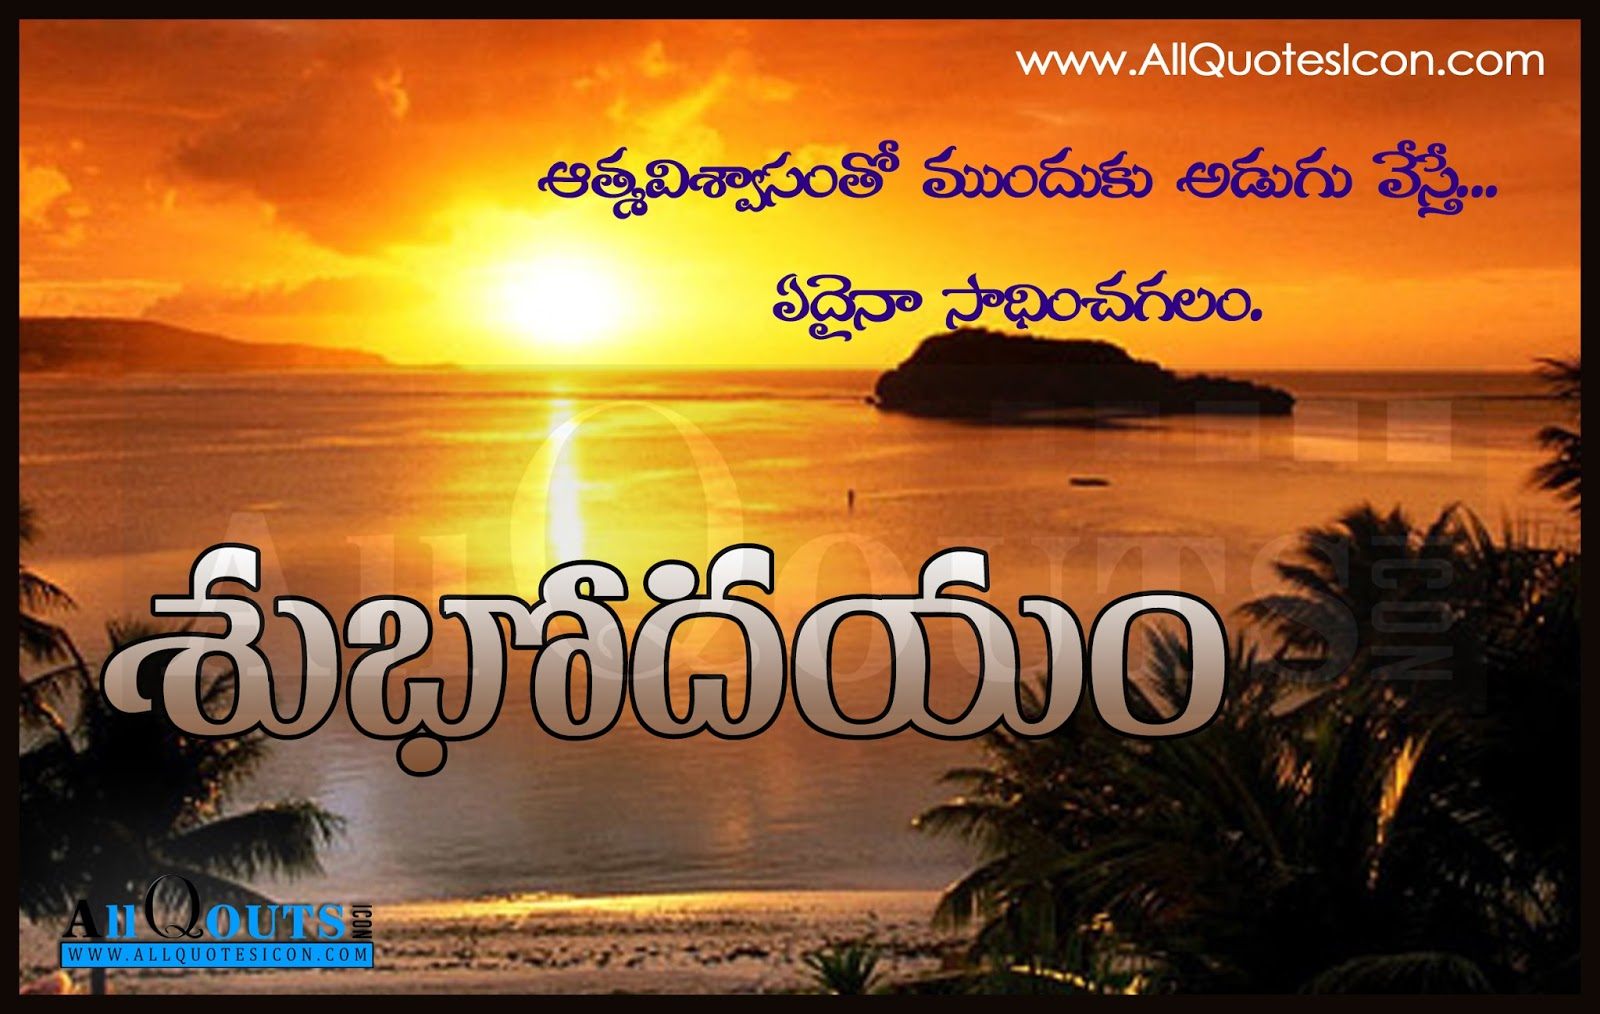 Telugu good morning greetings and quotes allquotesicon good morning telugu quotes images pictures wallpapers photos kristyandbryce Images